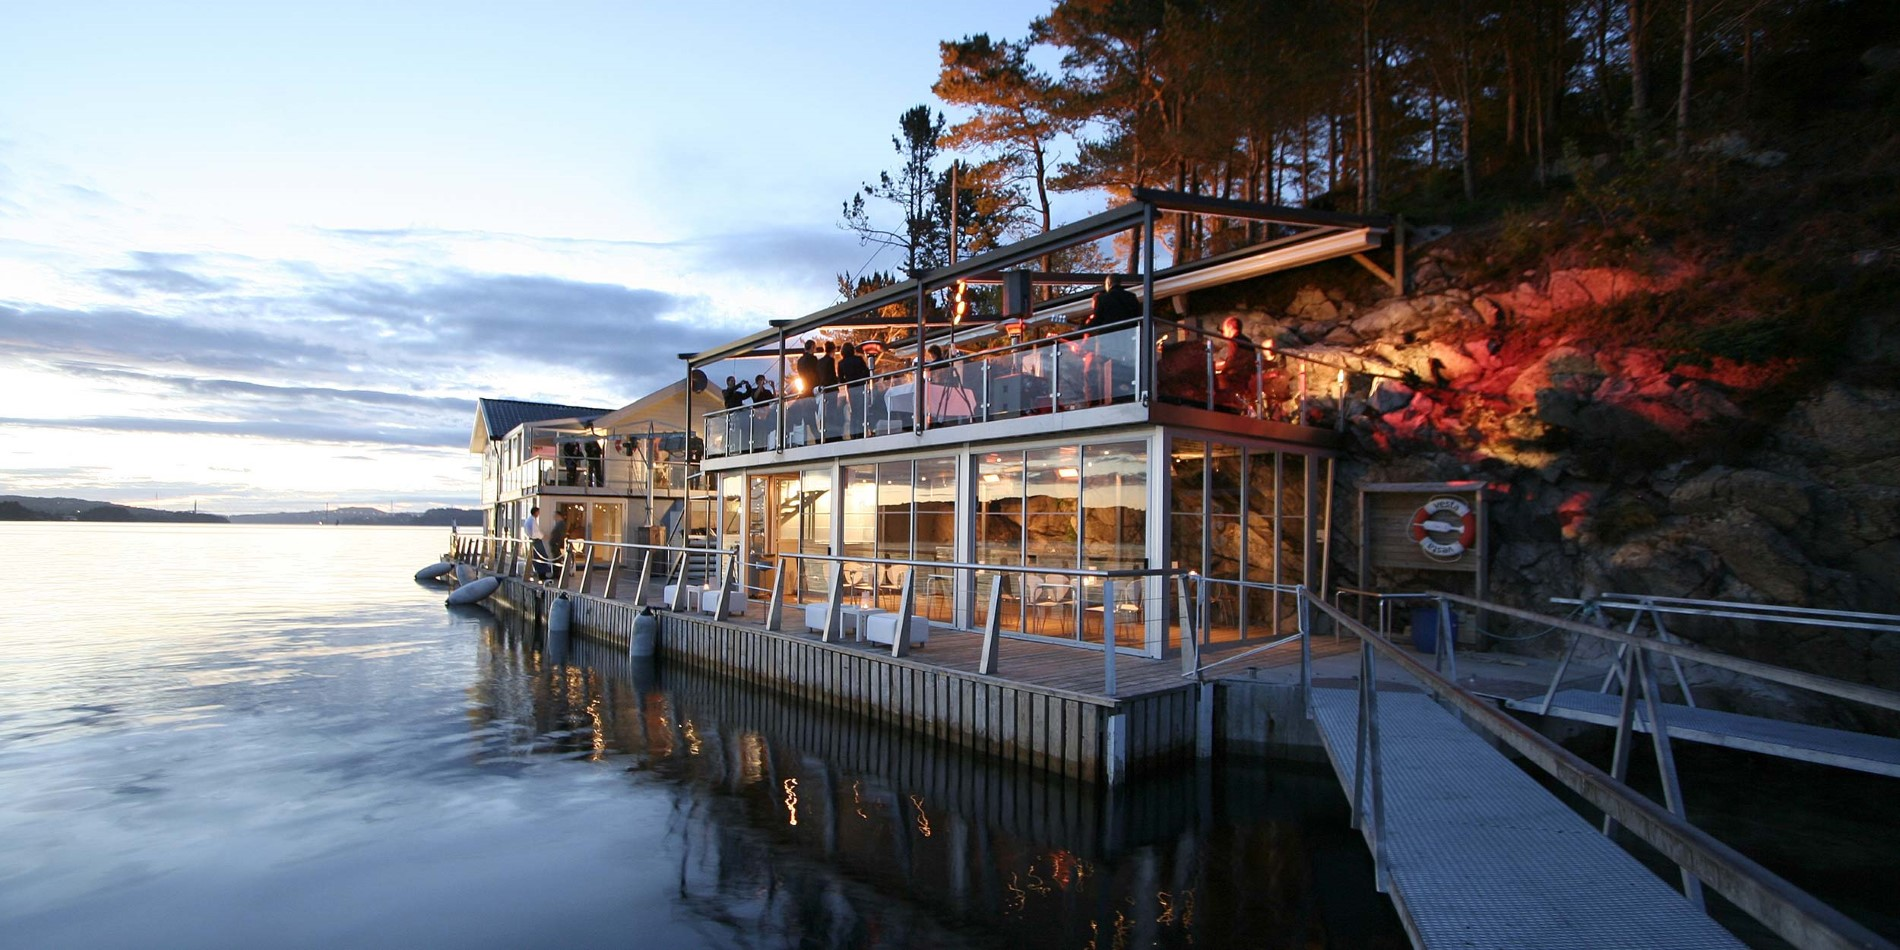 Enjoy a seafood dinner at Cornelius Restaurant outside Bergen